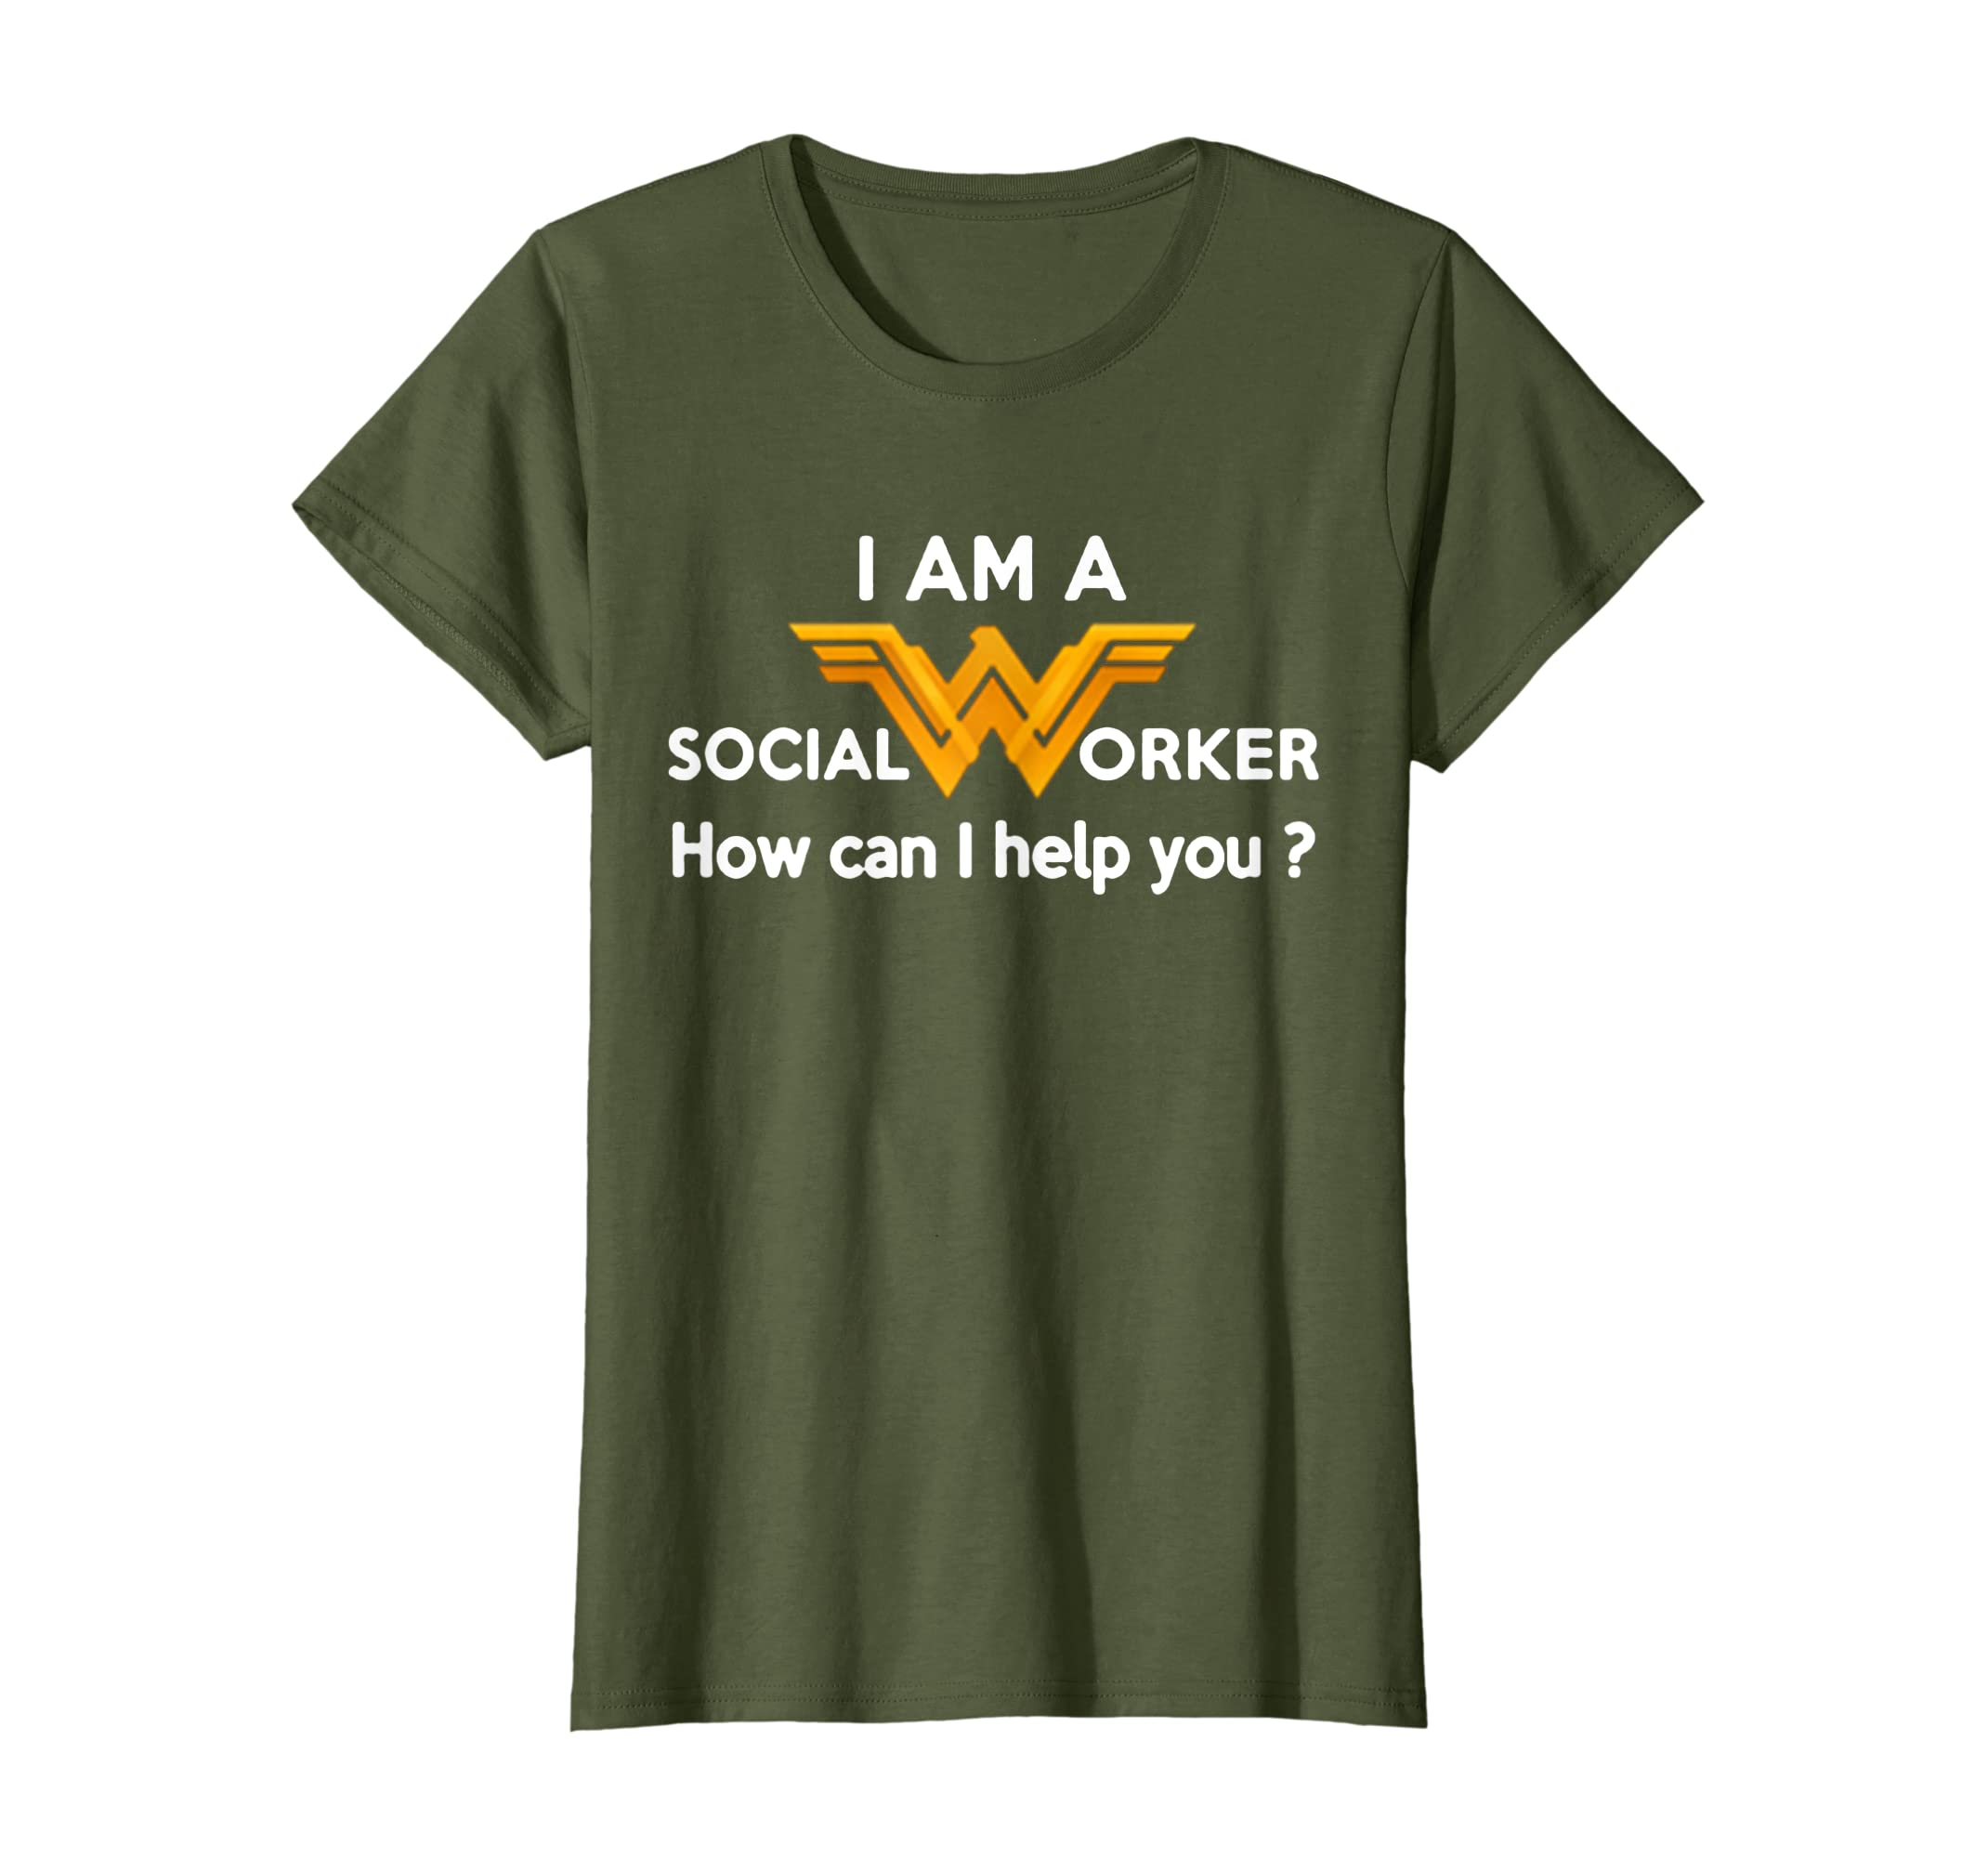 e2ba50d033a8a Amazon.com: I AM A WONDER SOCIAL WORKER T-SHIRT: Clothing